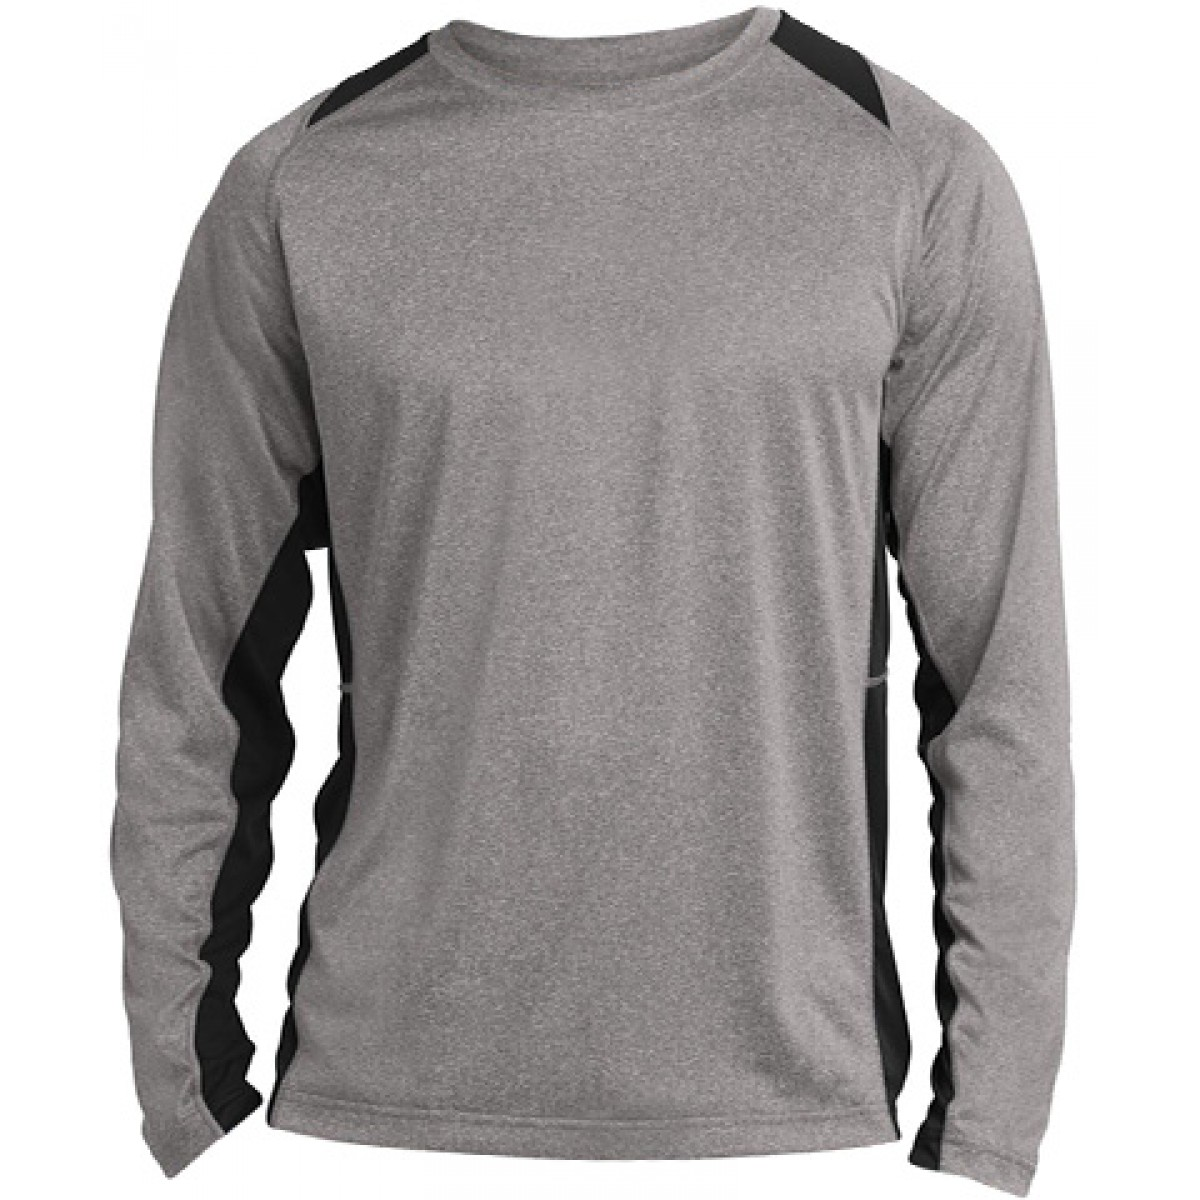 Long Sleeve Heather Colorblock Contender-Gray/Black-YL